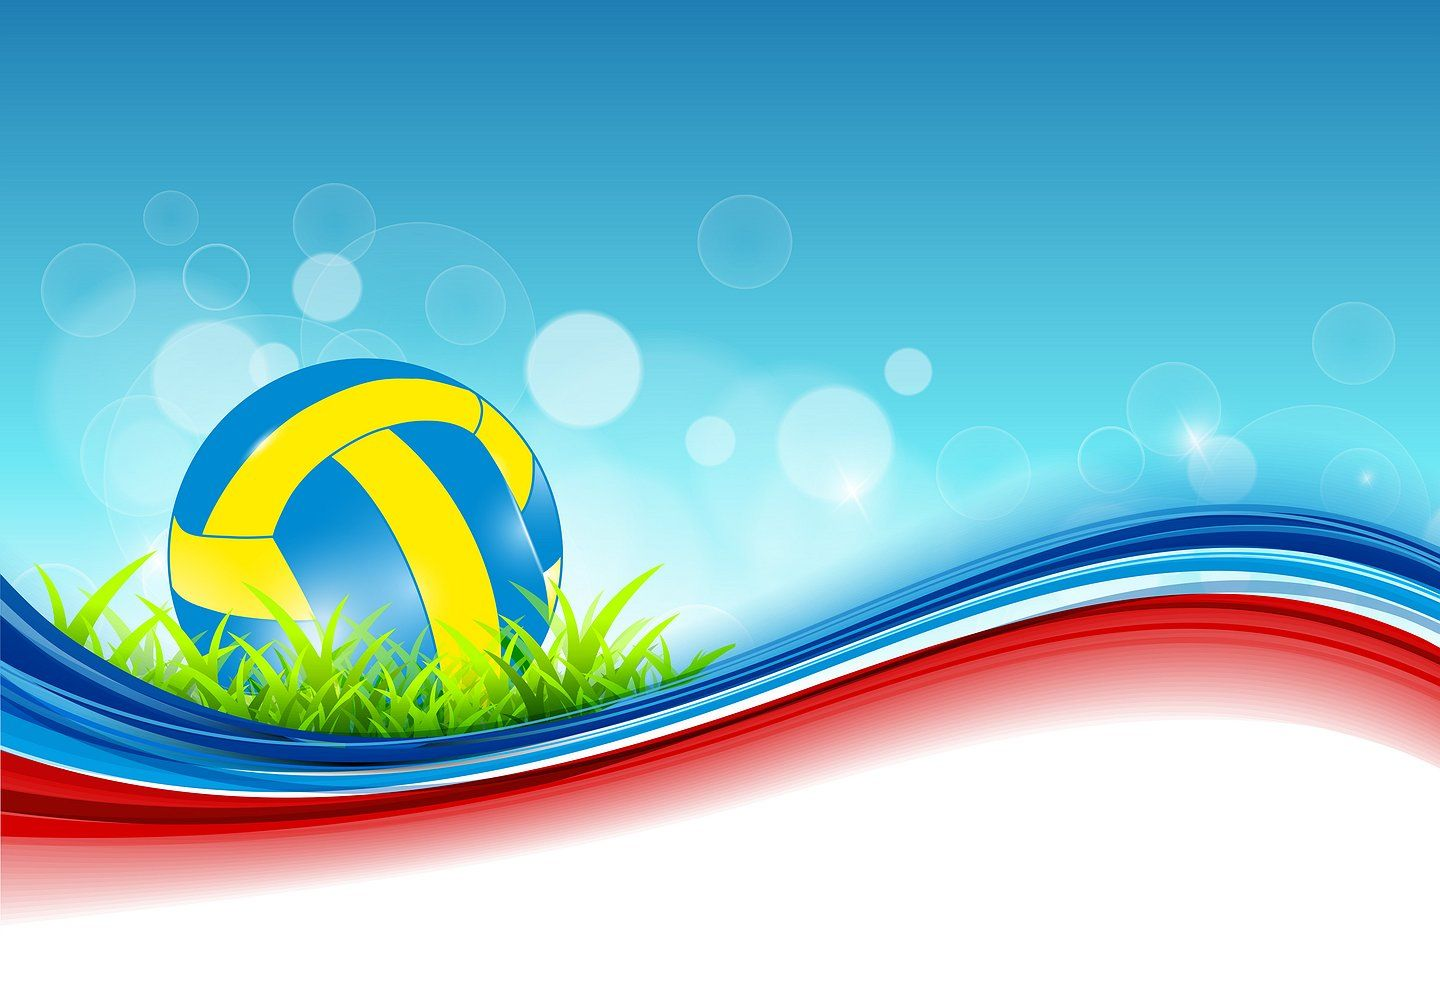 Download Background Voli Background Power Point Bola Voli And Search More Hd Desktop And Mobile Wallpapers On Itl Cat Di 2020 Bola Voli